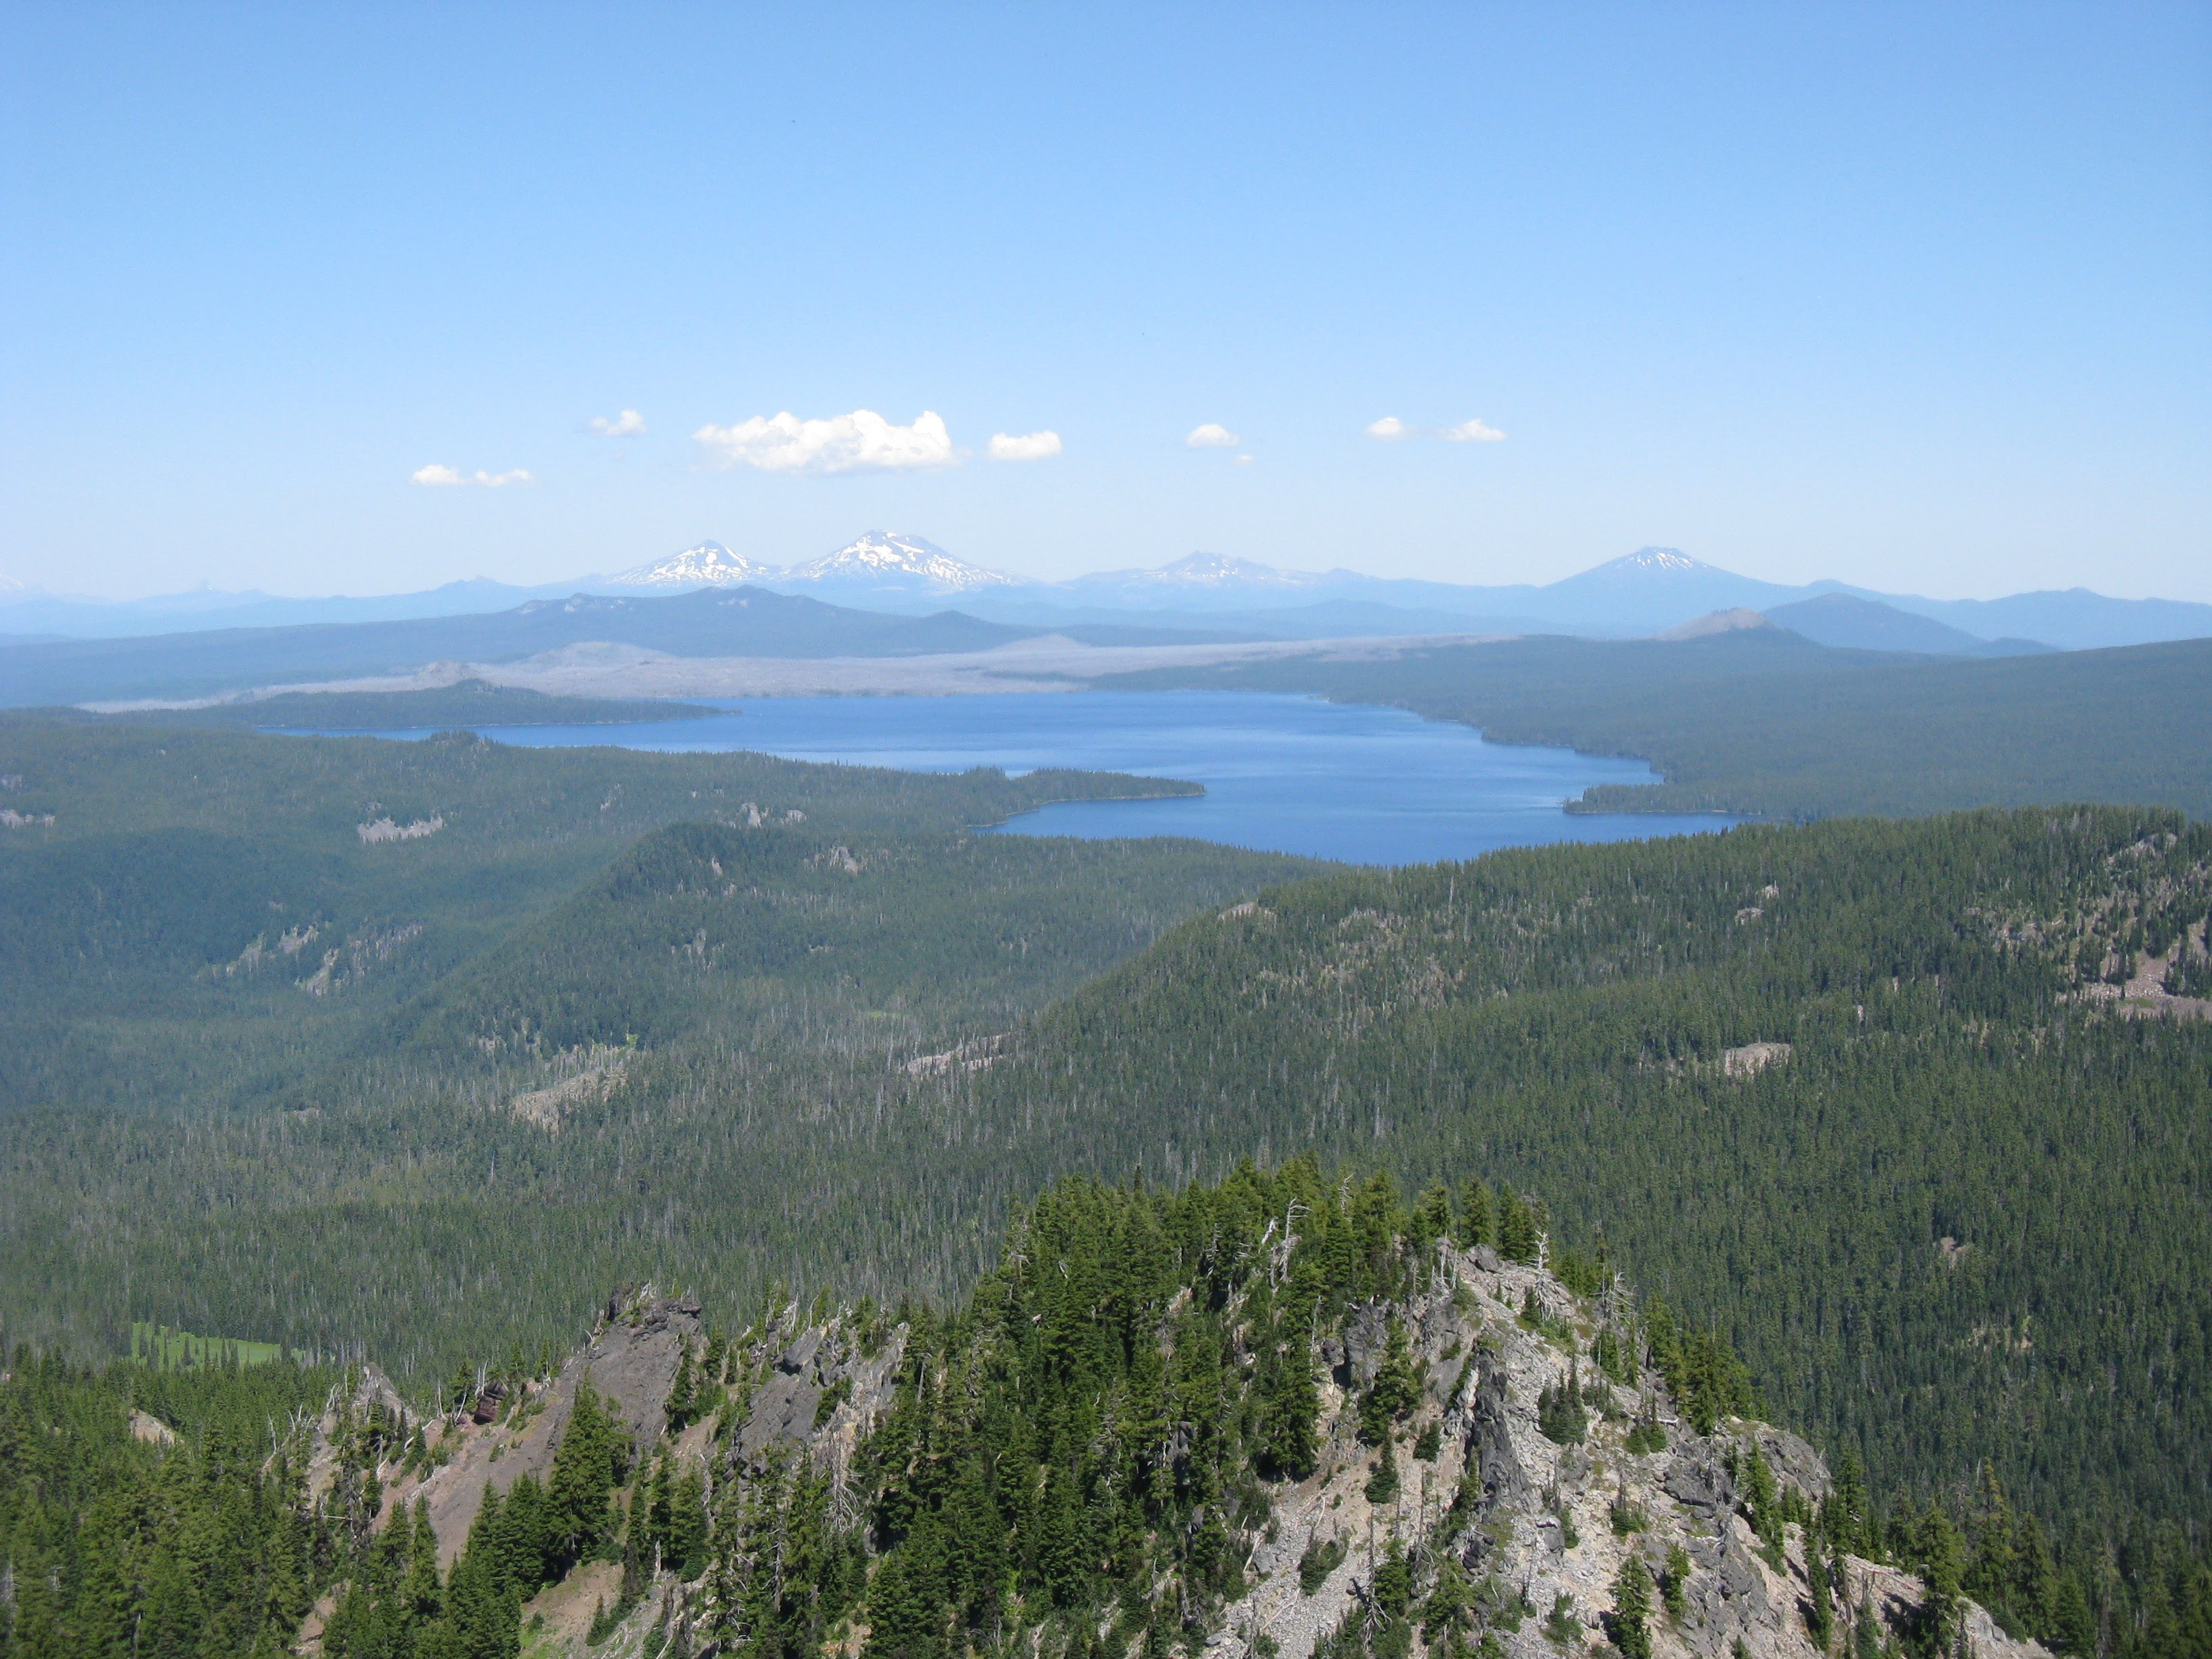 Waldo lake stretches out from the base of Fuji Mountain, in a roadless area protected with a robust NEPA analysis.